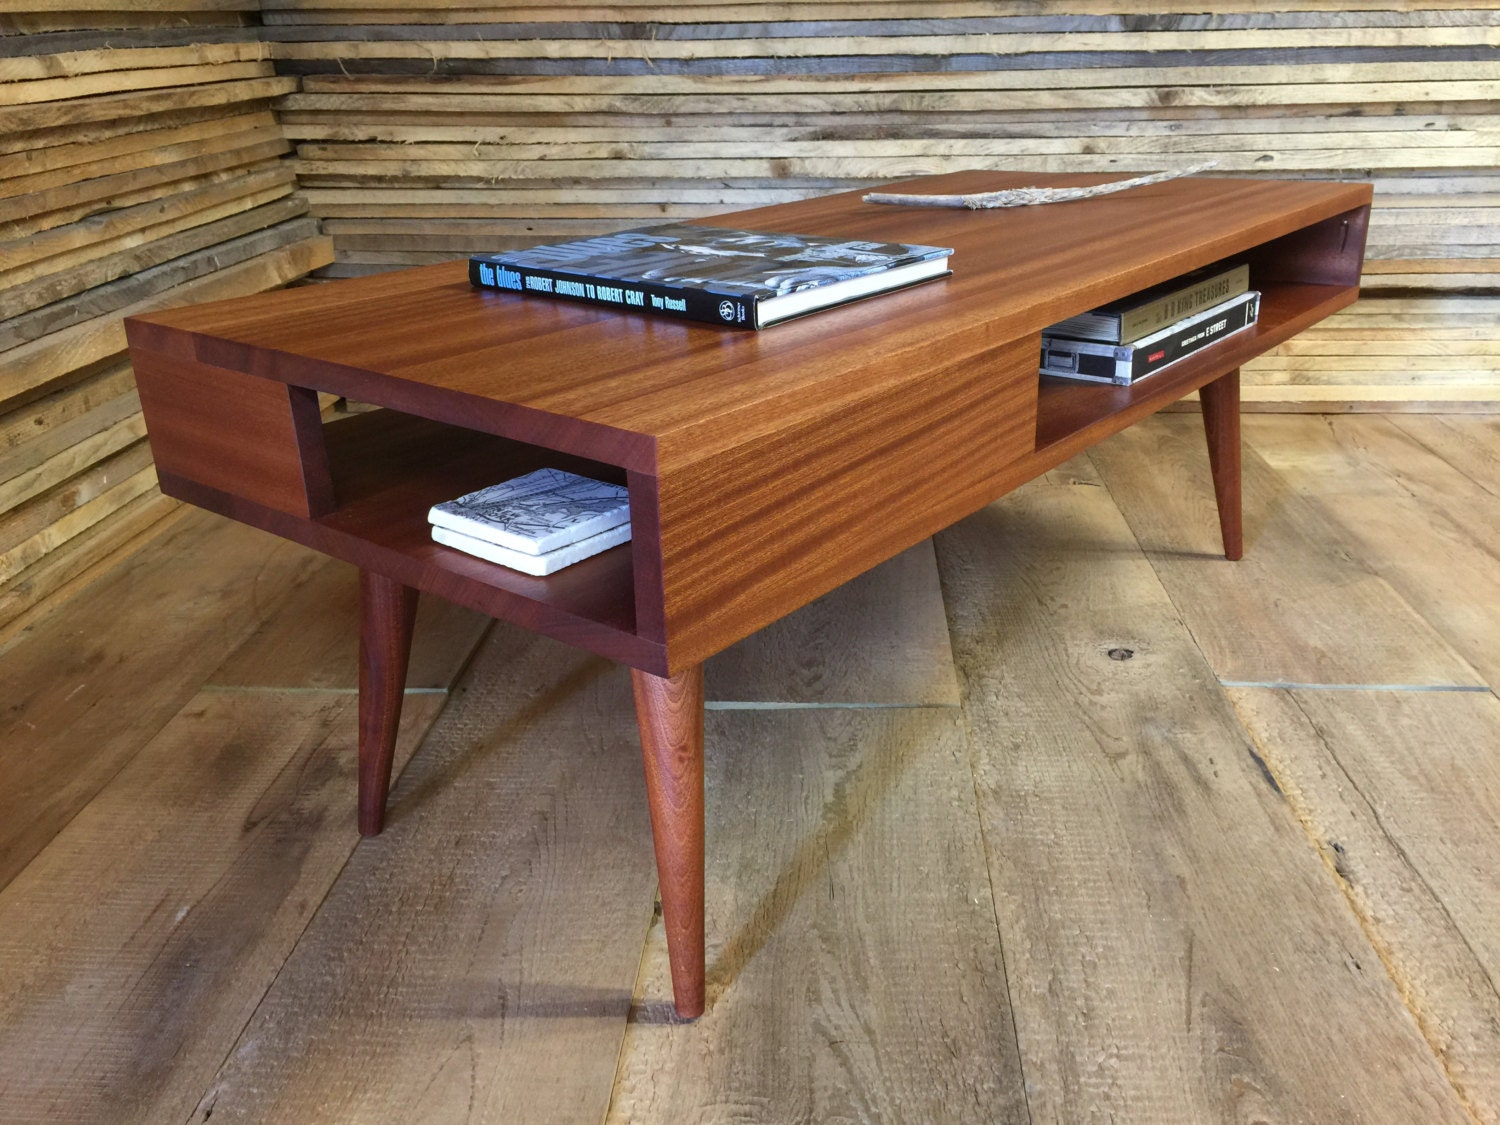 Thin man mid century modern coffee table with storage Mid century coffee tables